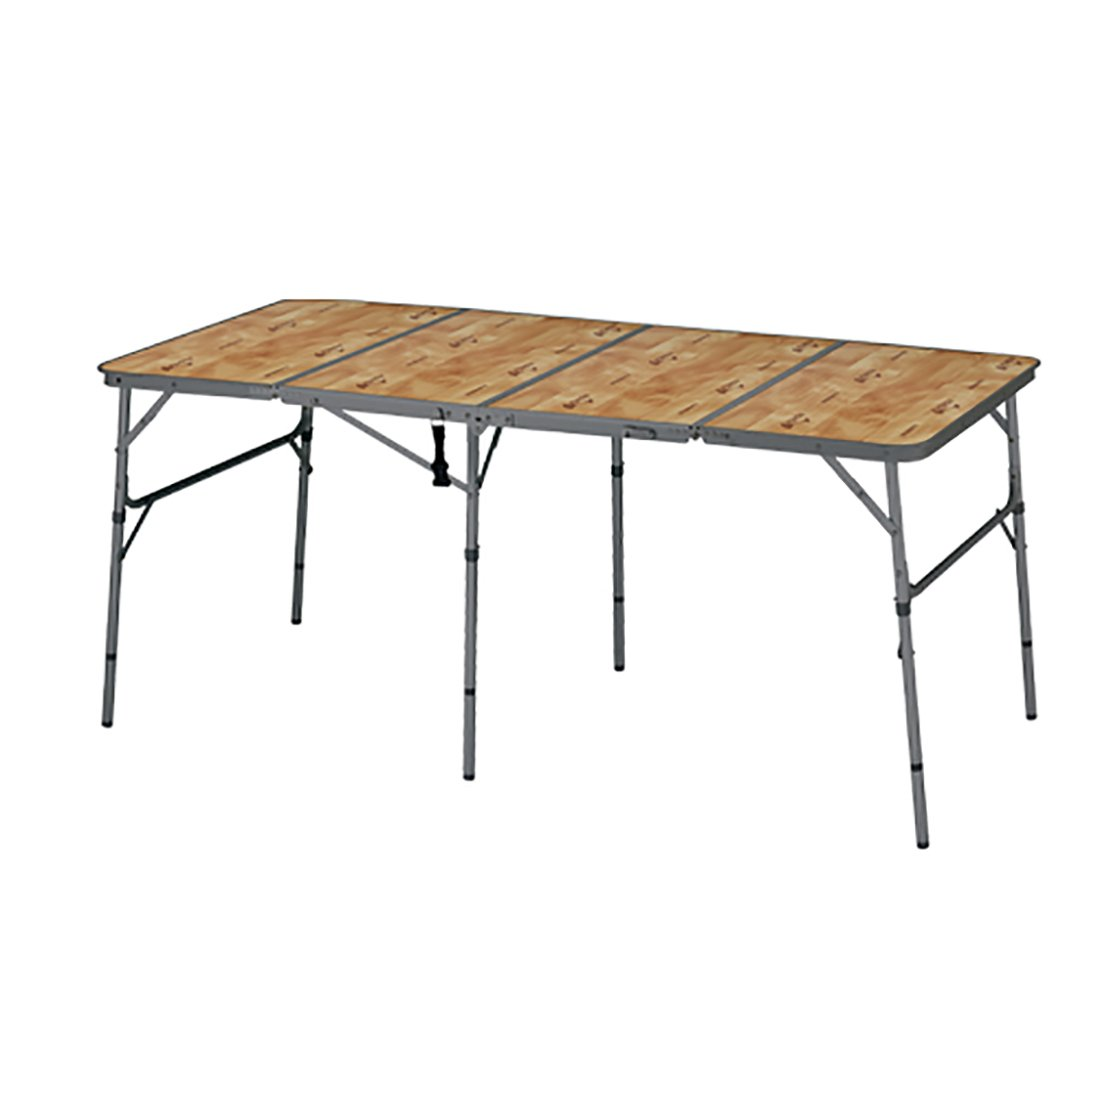 Titan Slim 4 folding Table by Kovea